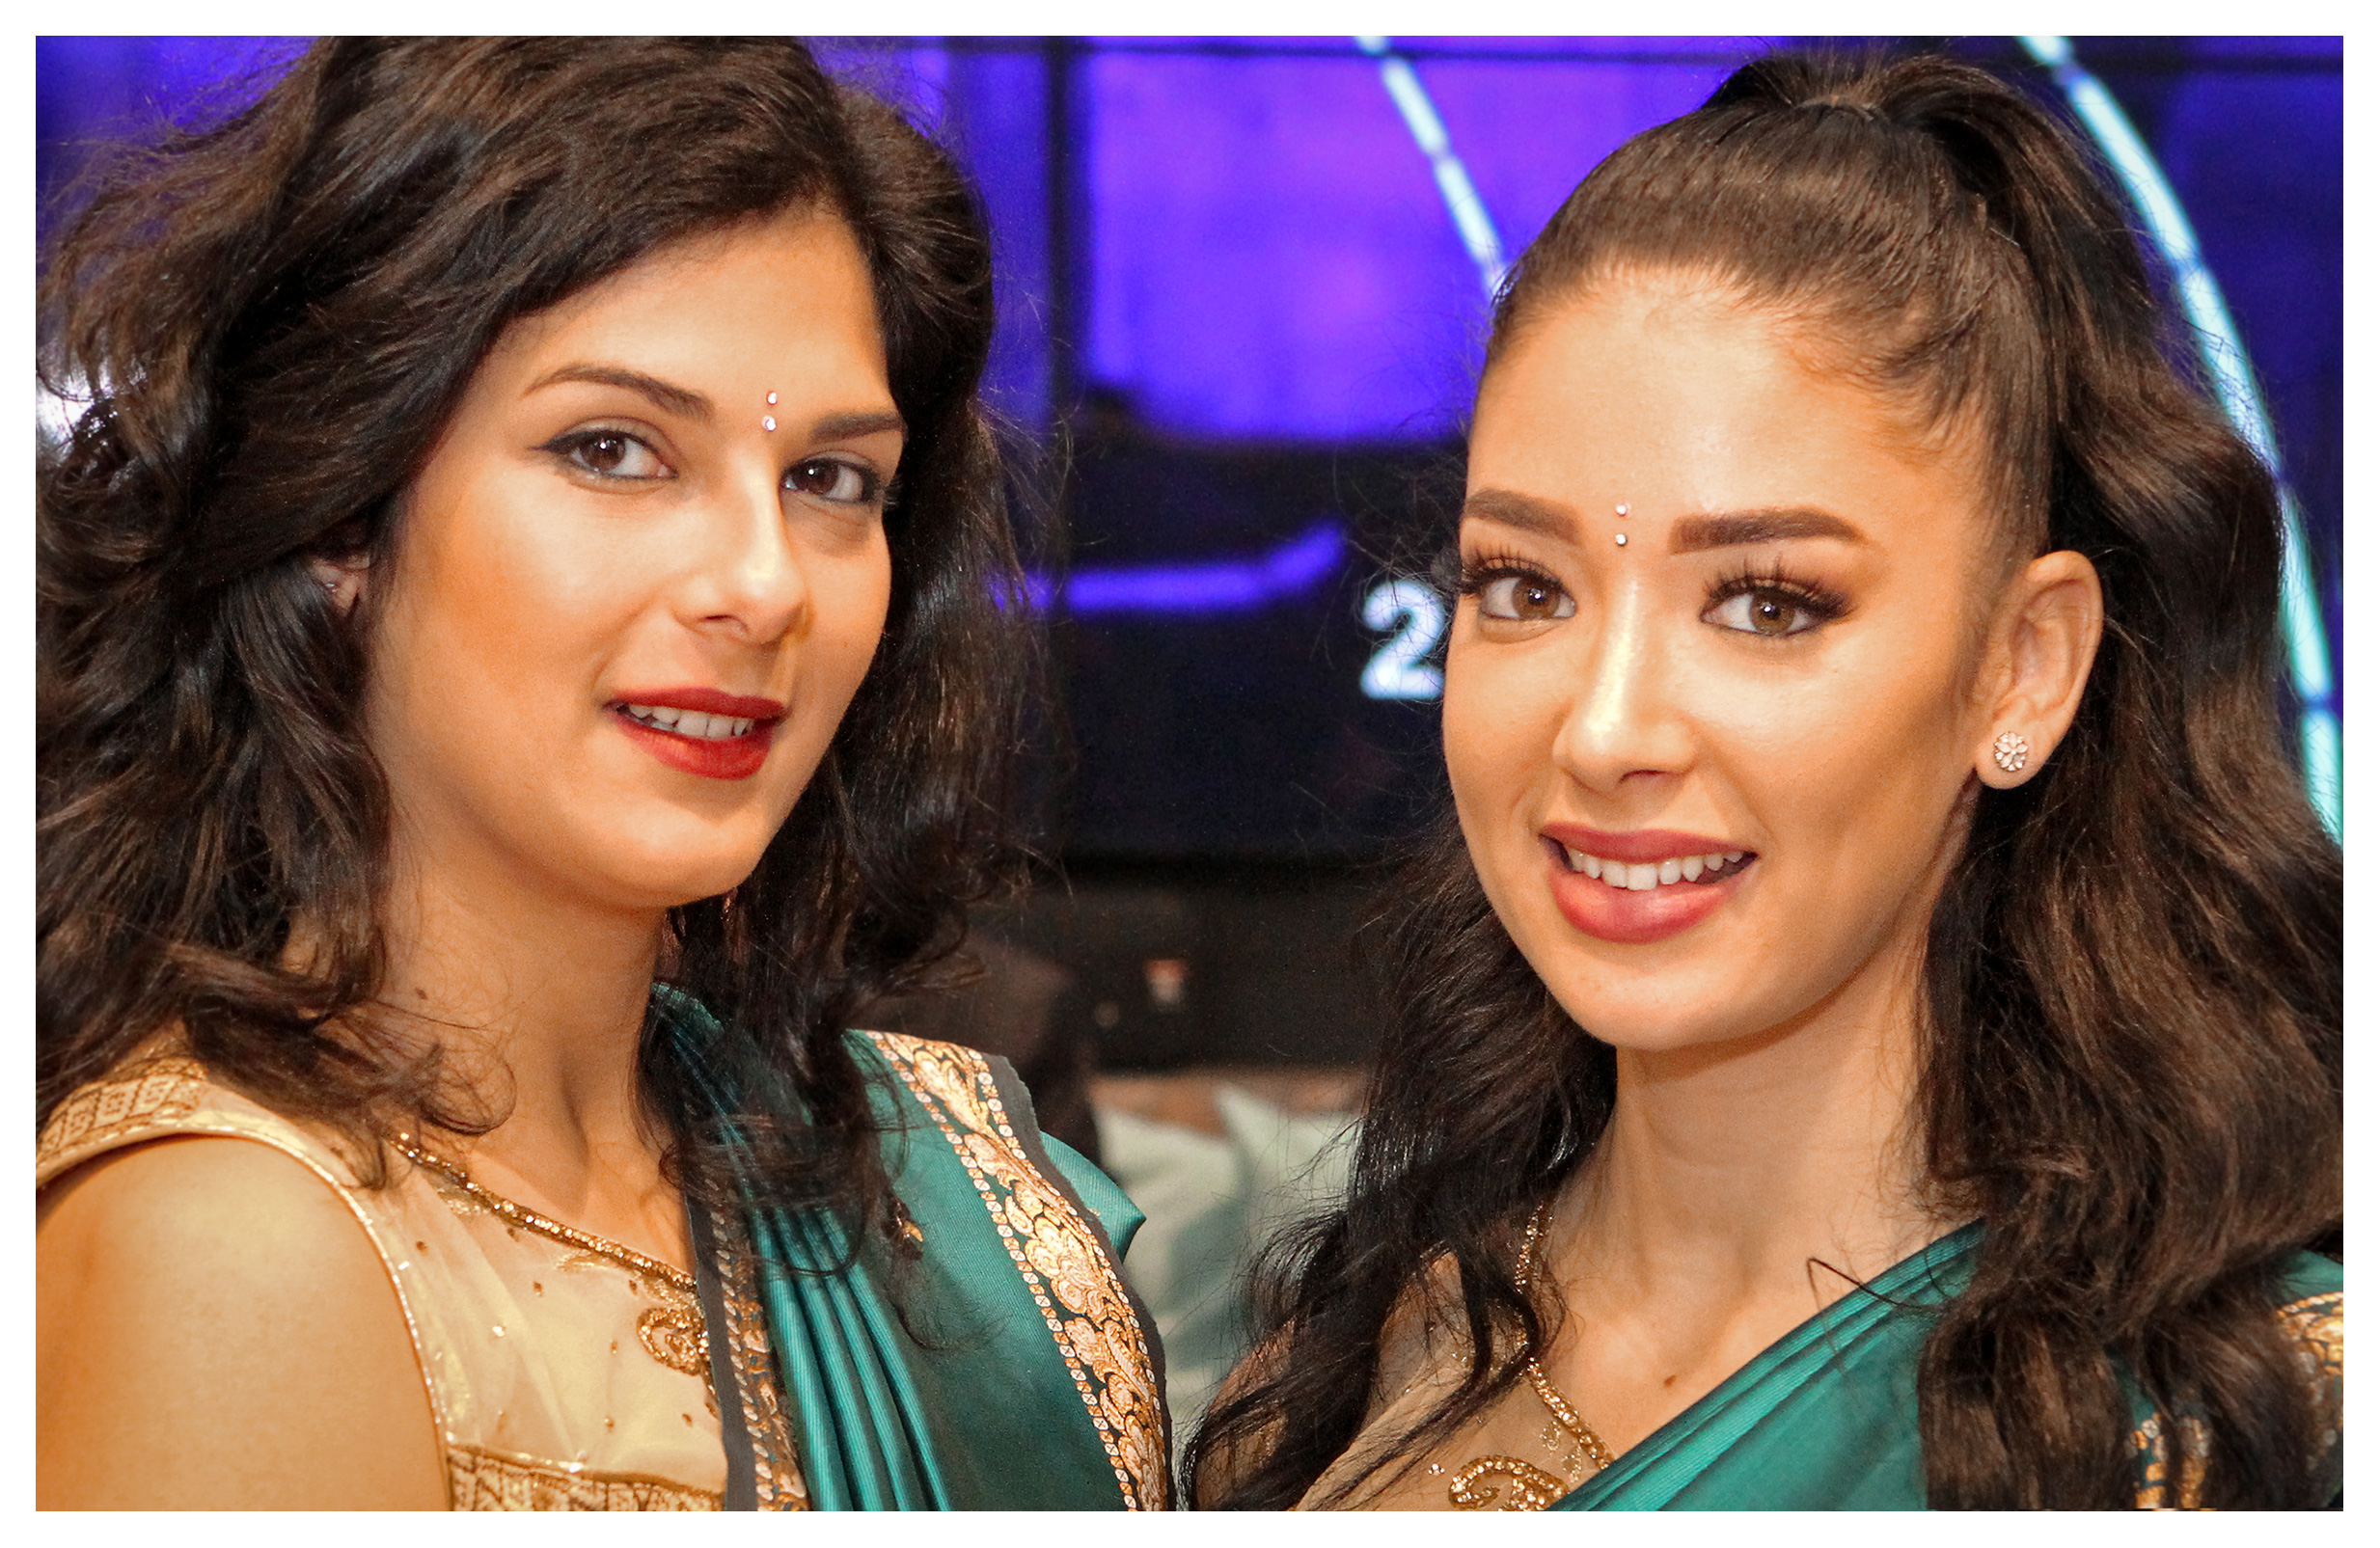 Editorial (portrait) photography: Beautiful hostesses, World Travel Market 2017, ExCel London